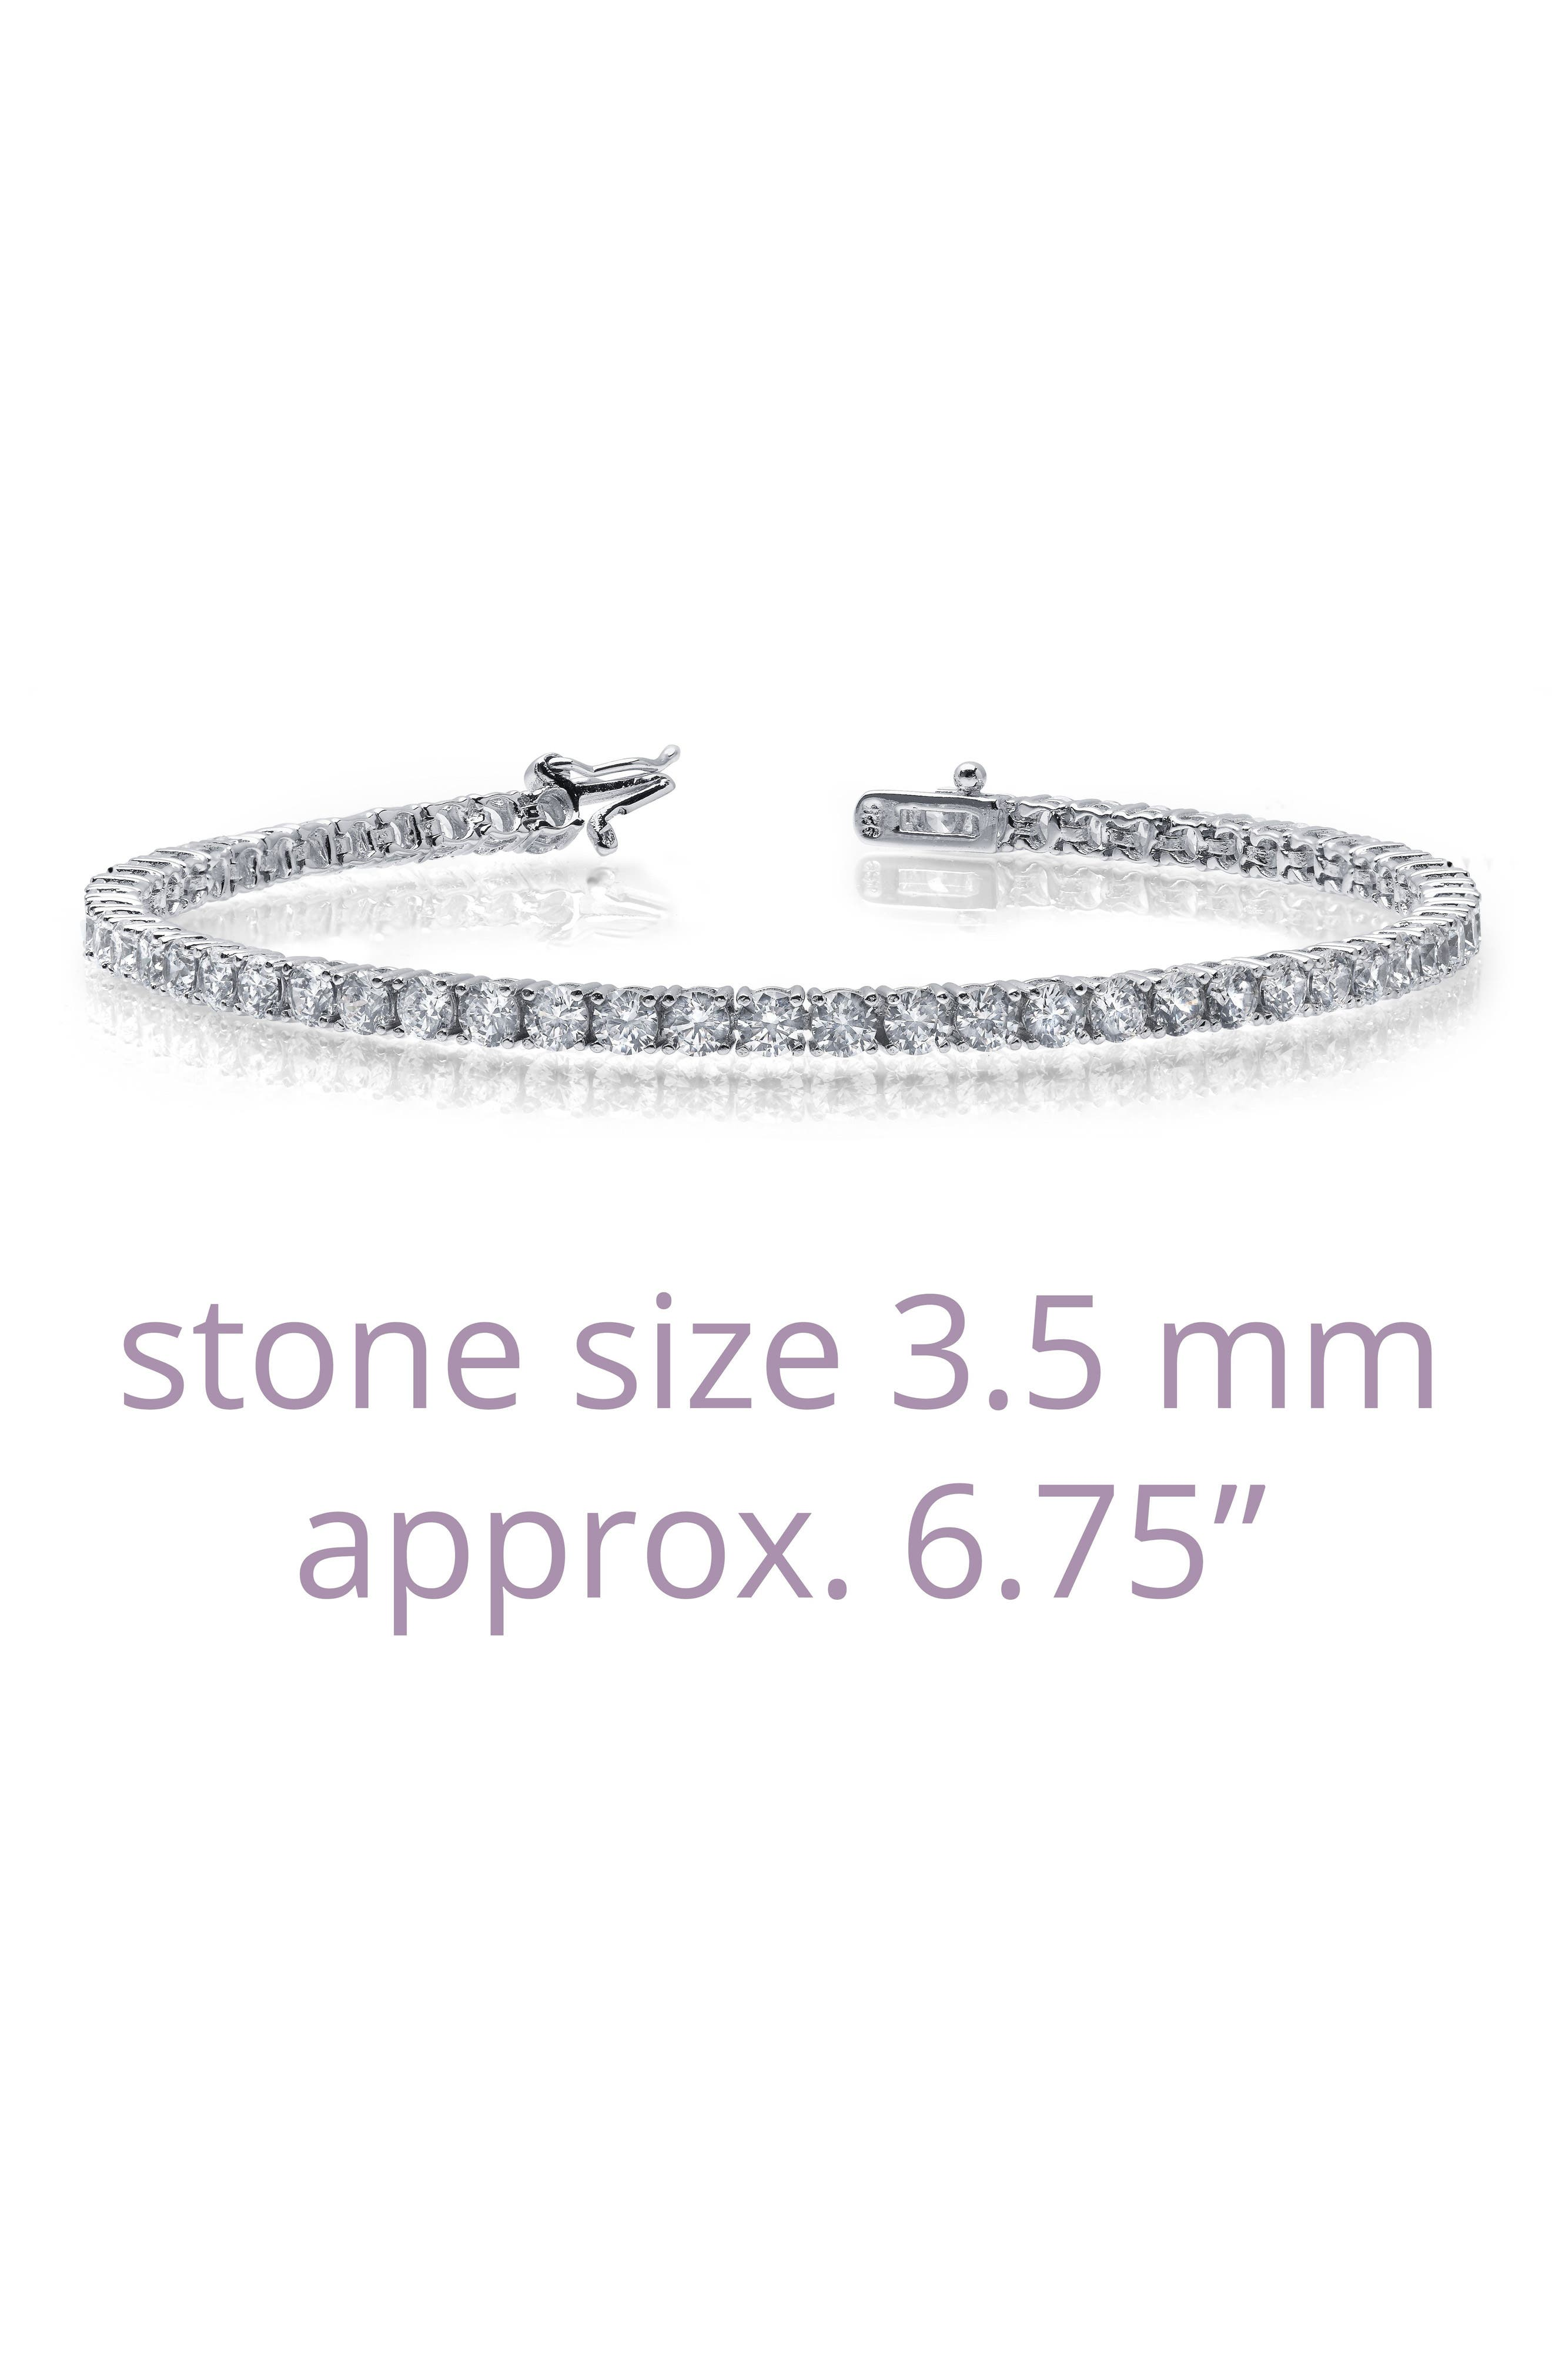 Classic Simulated Diamond Tennis Bracelet,                             Alternate thumbnail 3, color,                             SILVER